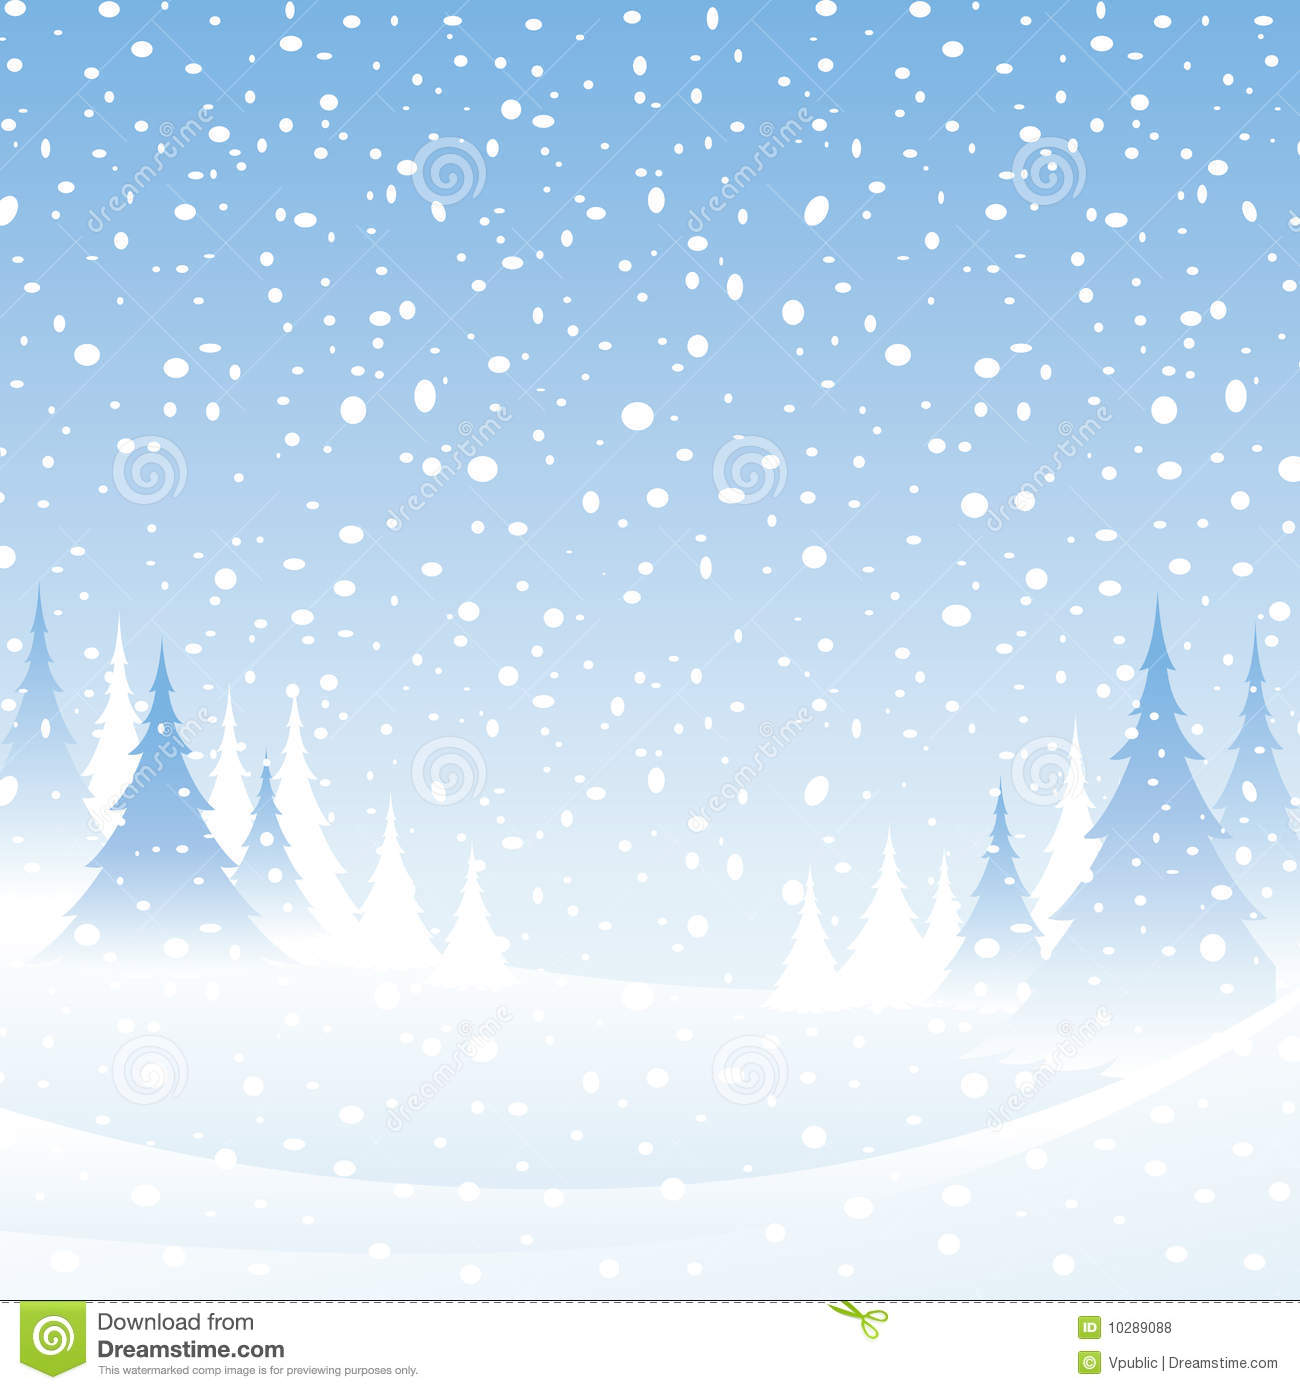 Clipart lake snowy scenery. Free landscape cliparts download